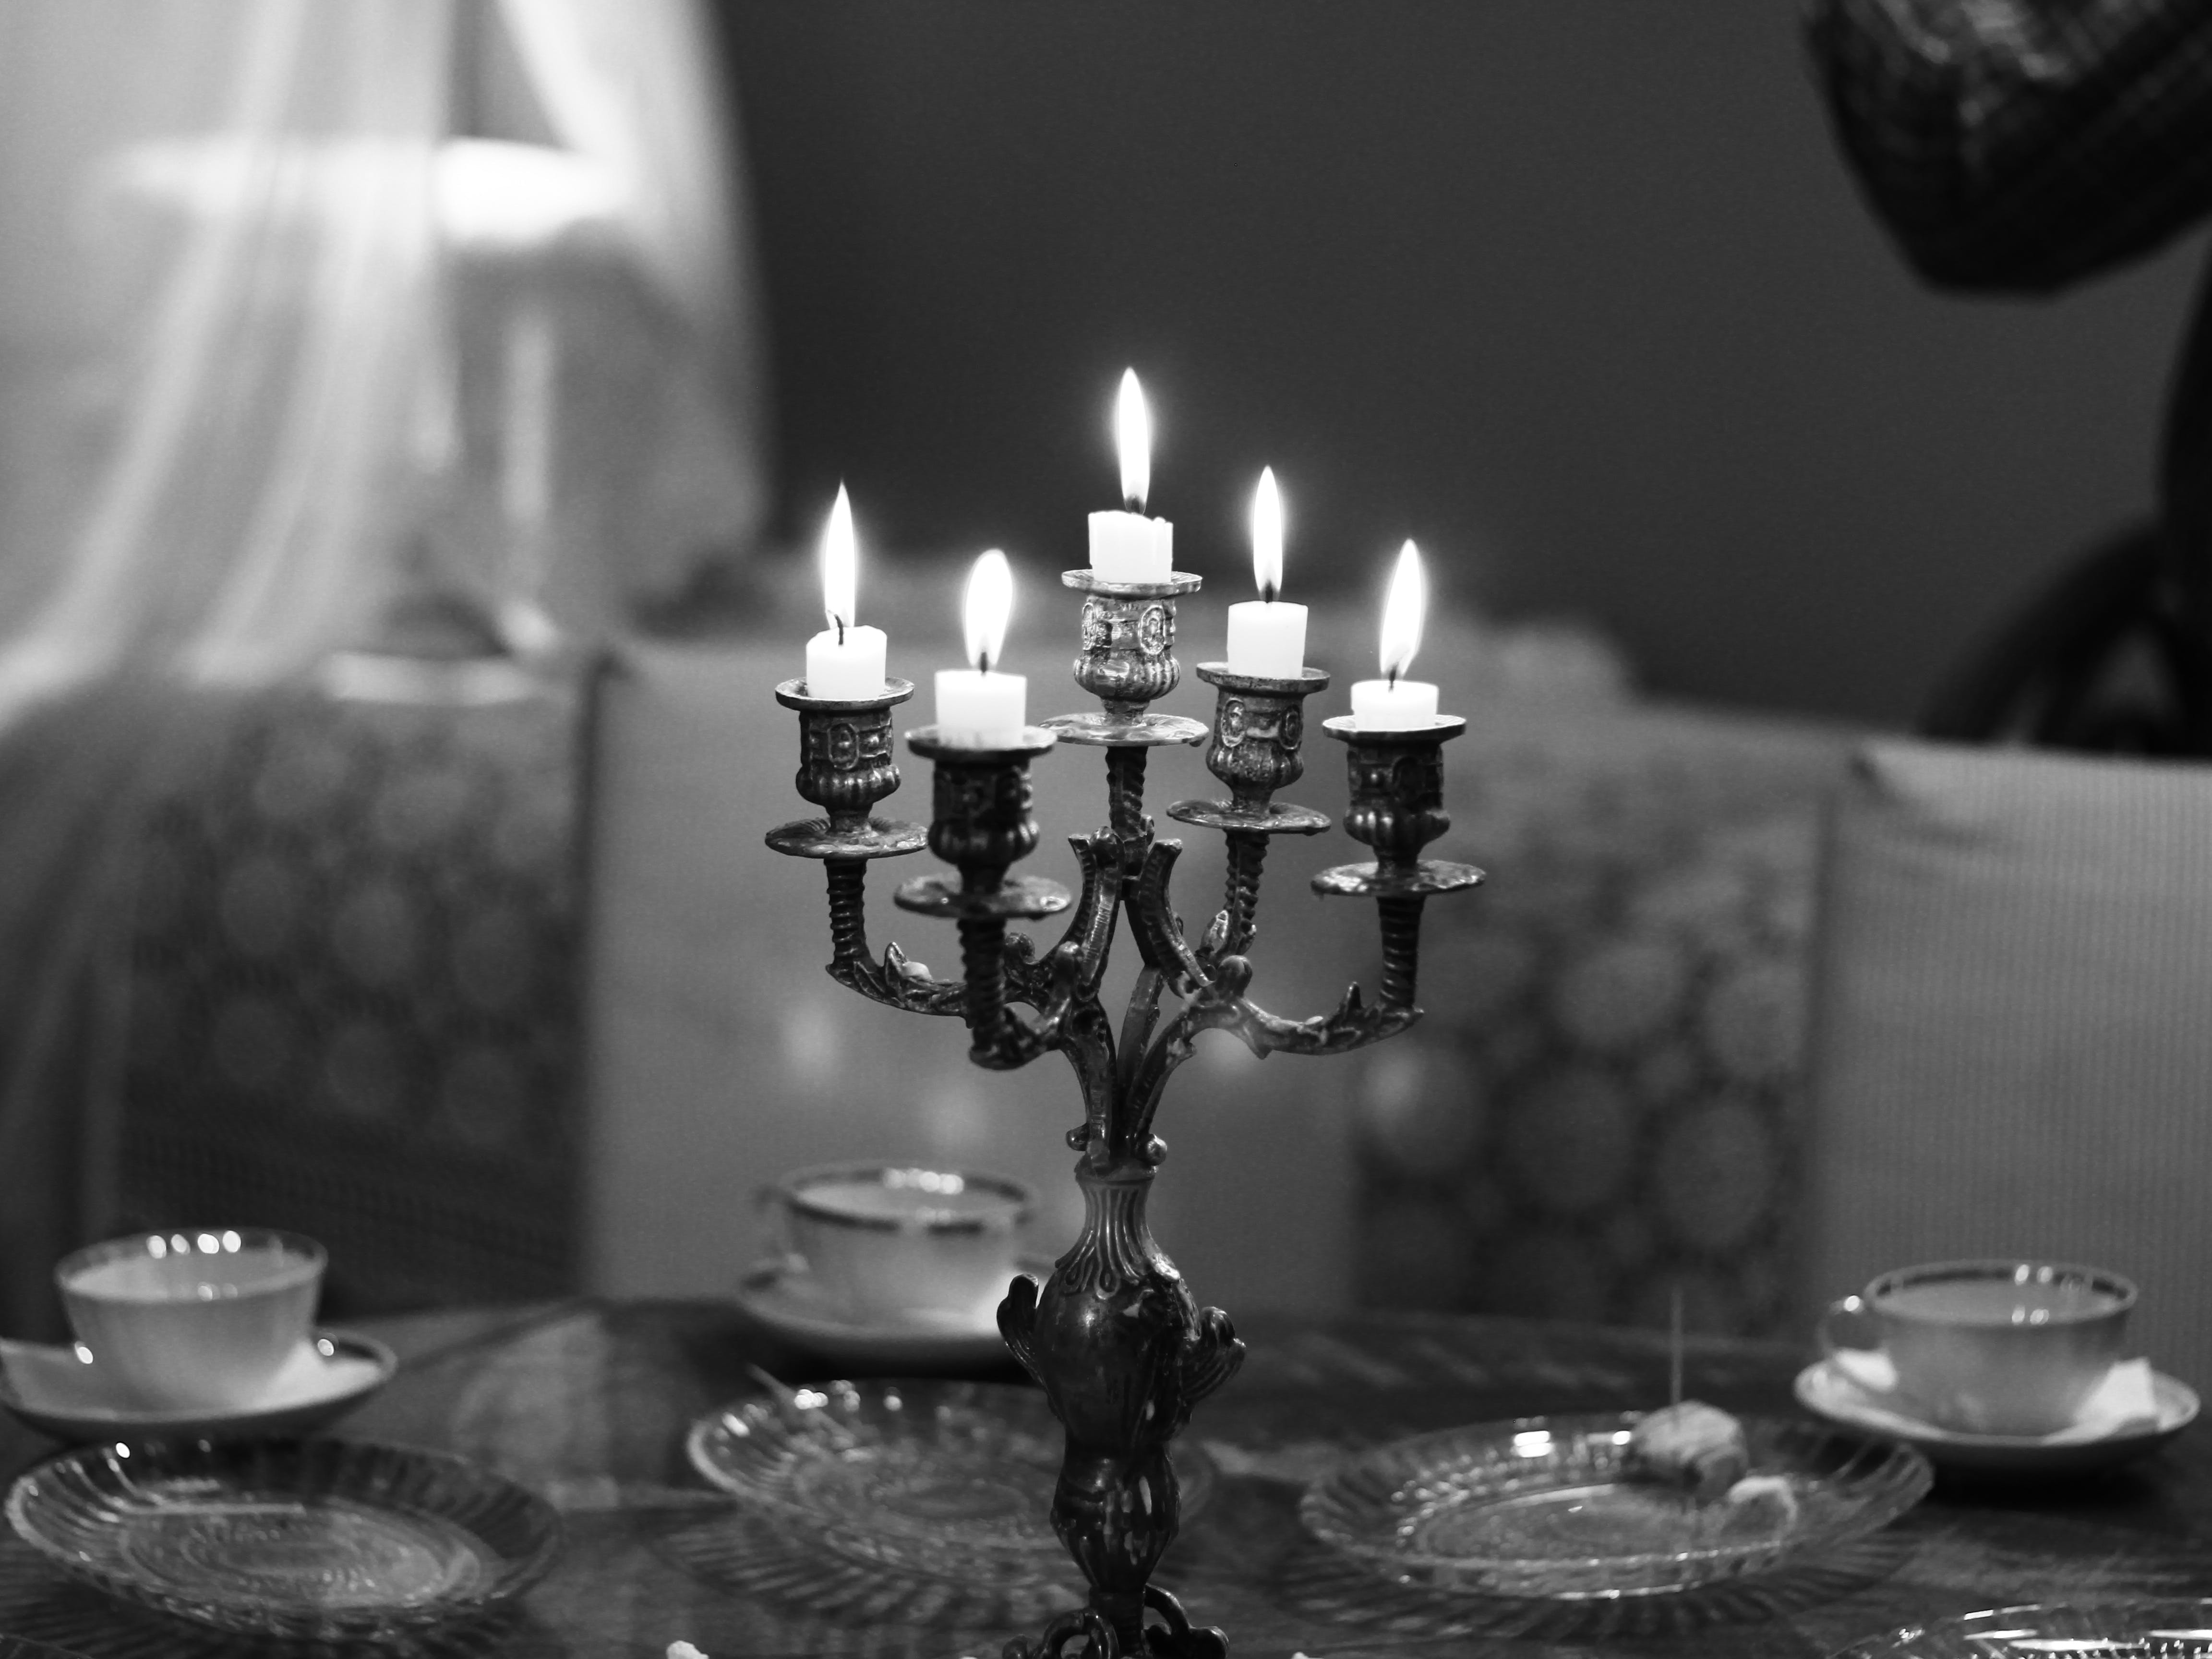 Candelabra in Grayscale